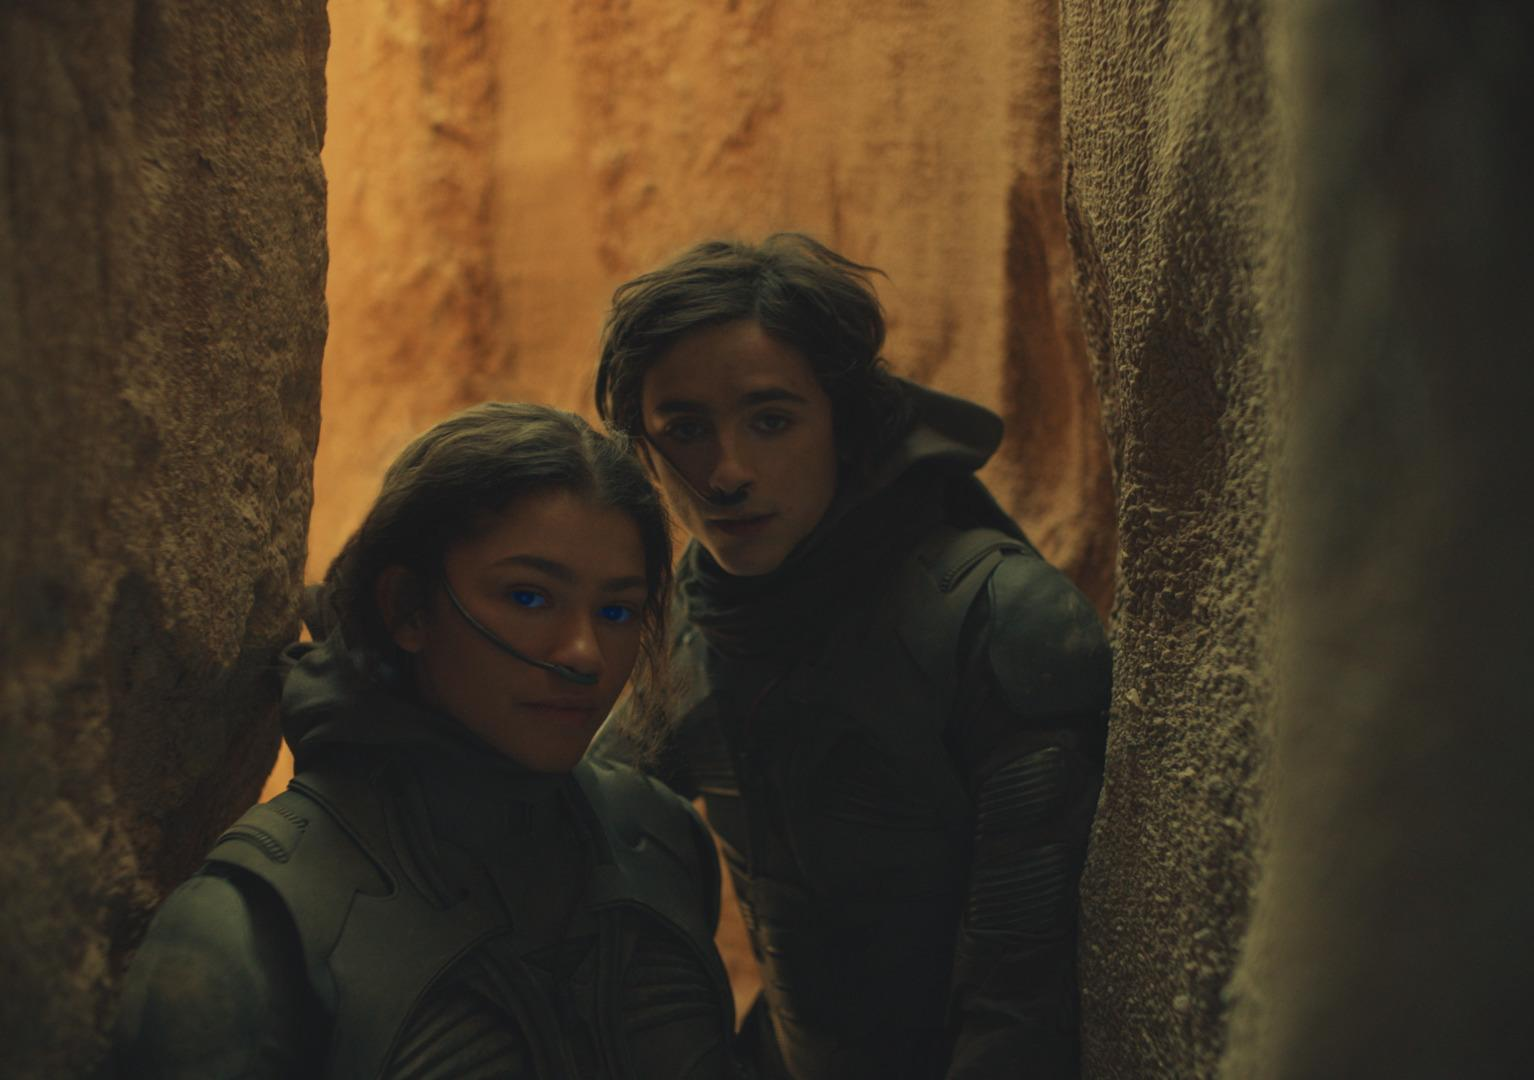 Zendaya and Timothee Chalamet in a still from Denis Villeneuve's adaptation of Frank Herbert's Dune. (Warner Bros.)